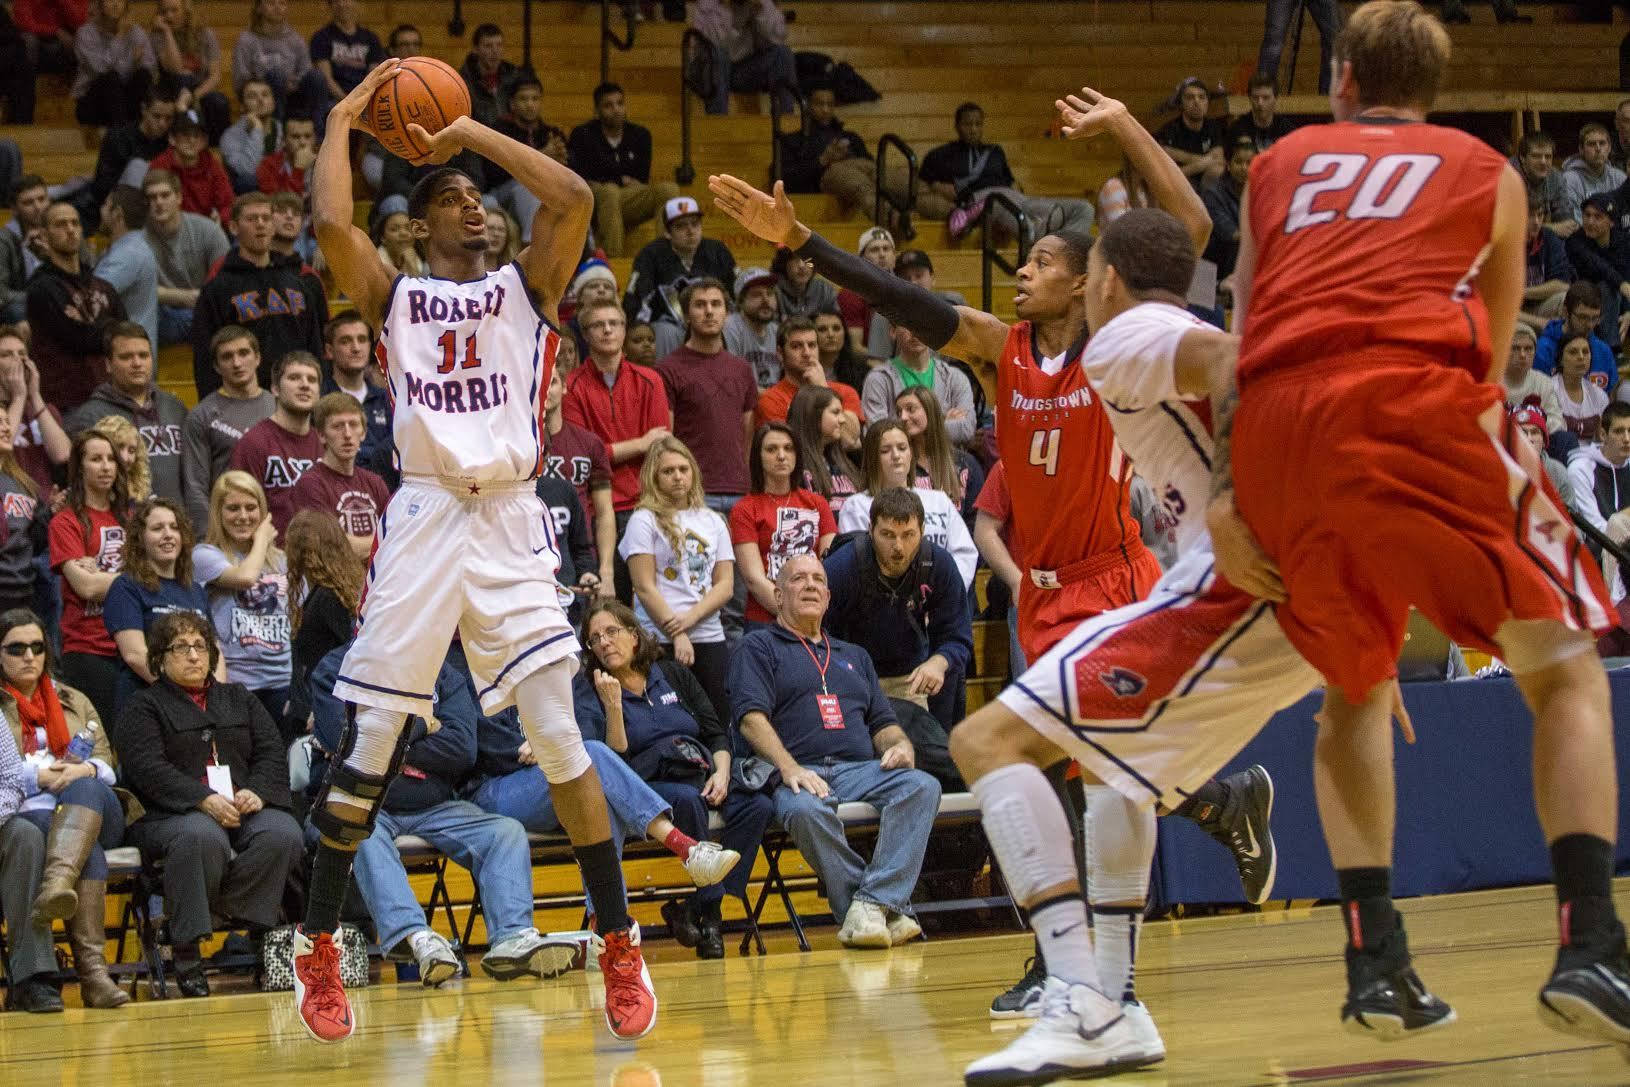 Rodney Pryor scored 14 points for RMU Tuesday night, but it wasn't enough to overcome Youngstown State.